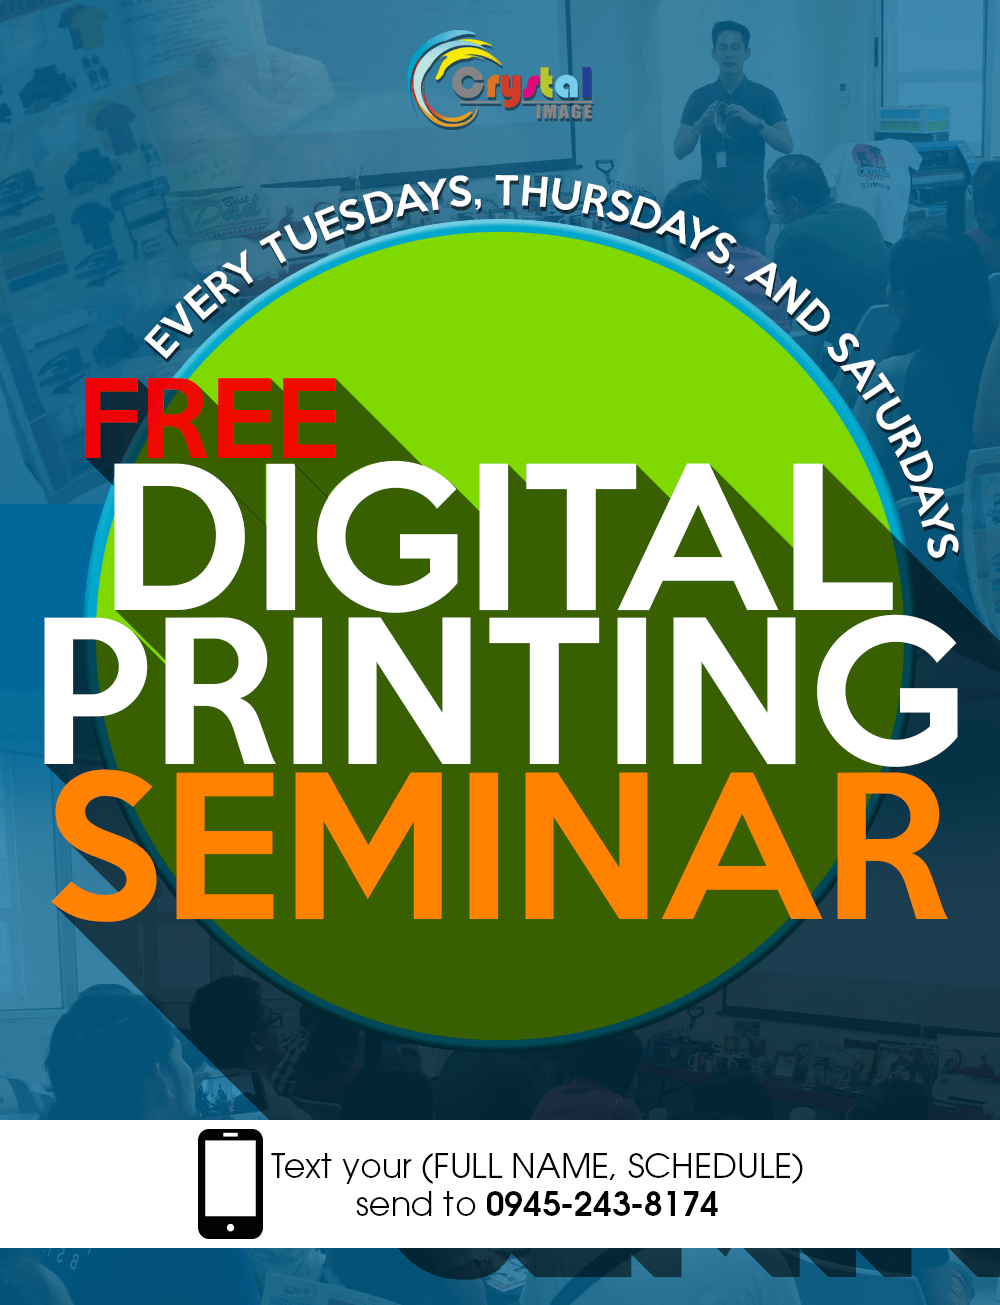 Free Seminar, Free Digital Printing Seminar, Heat Press, Digital Printing